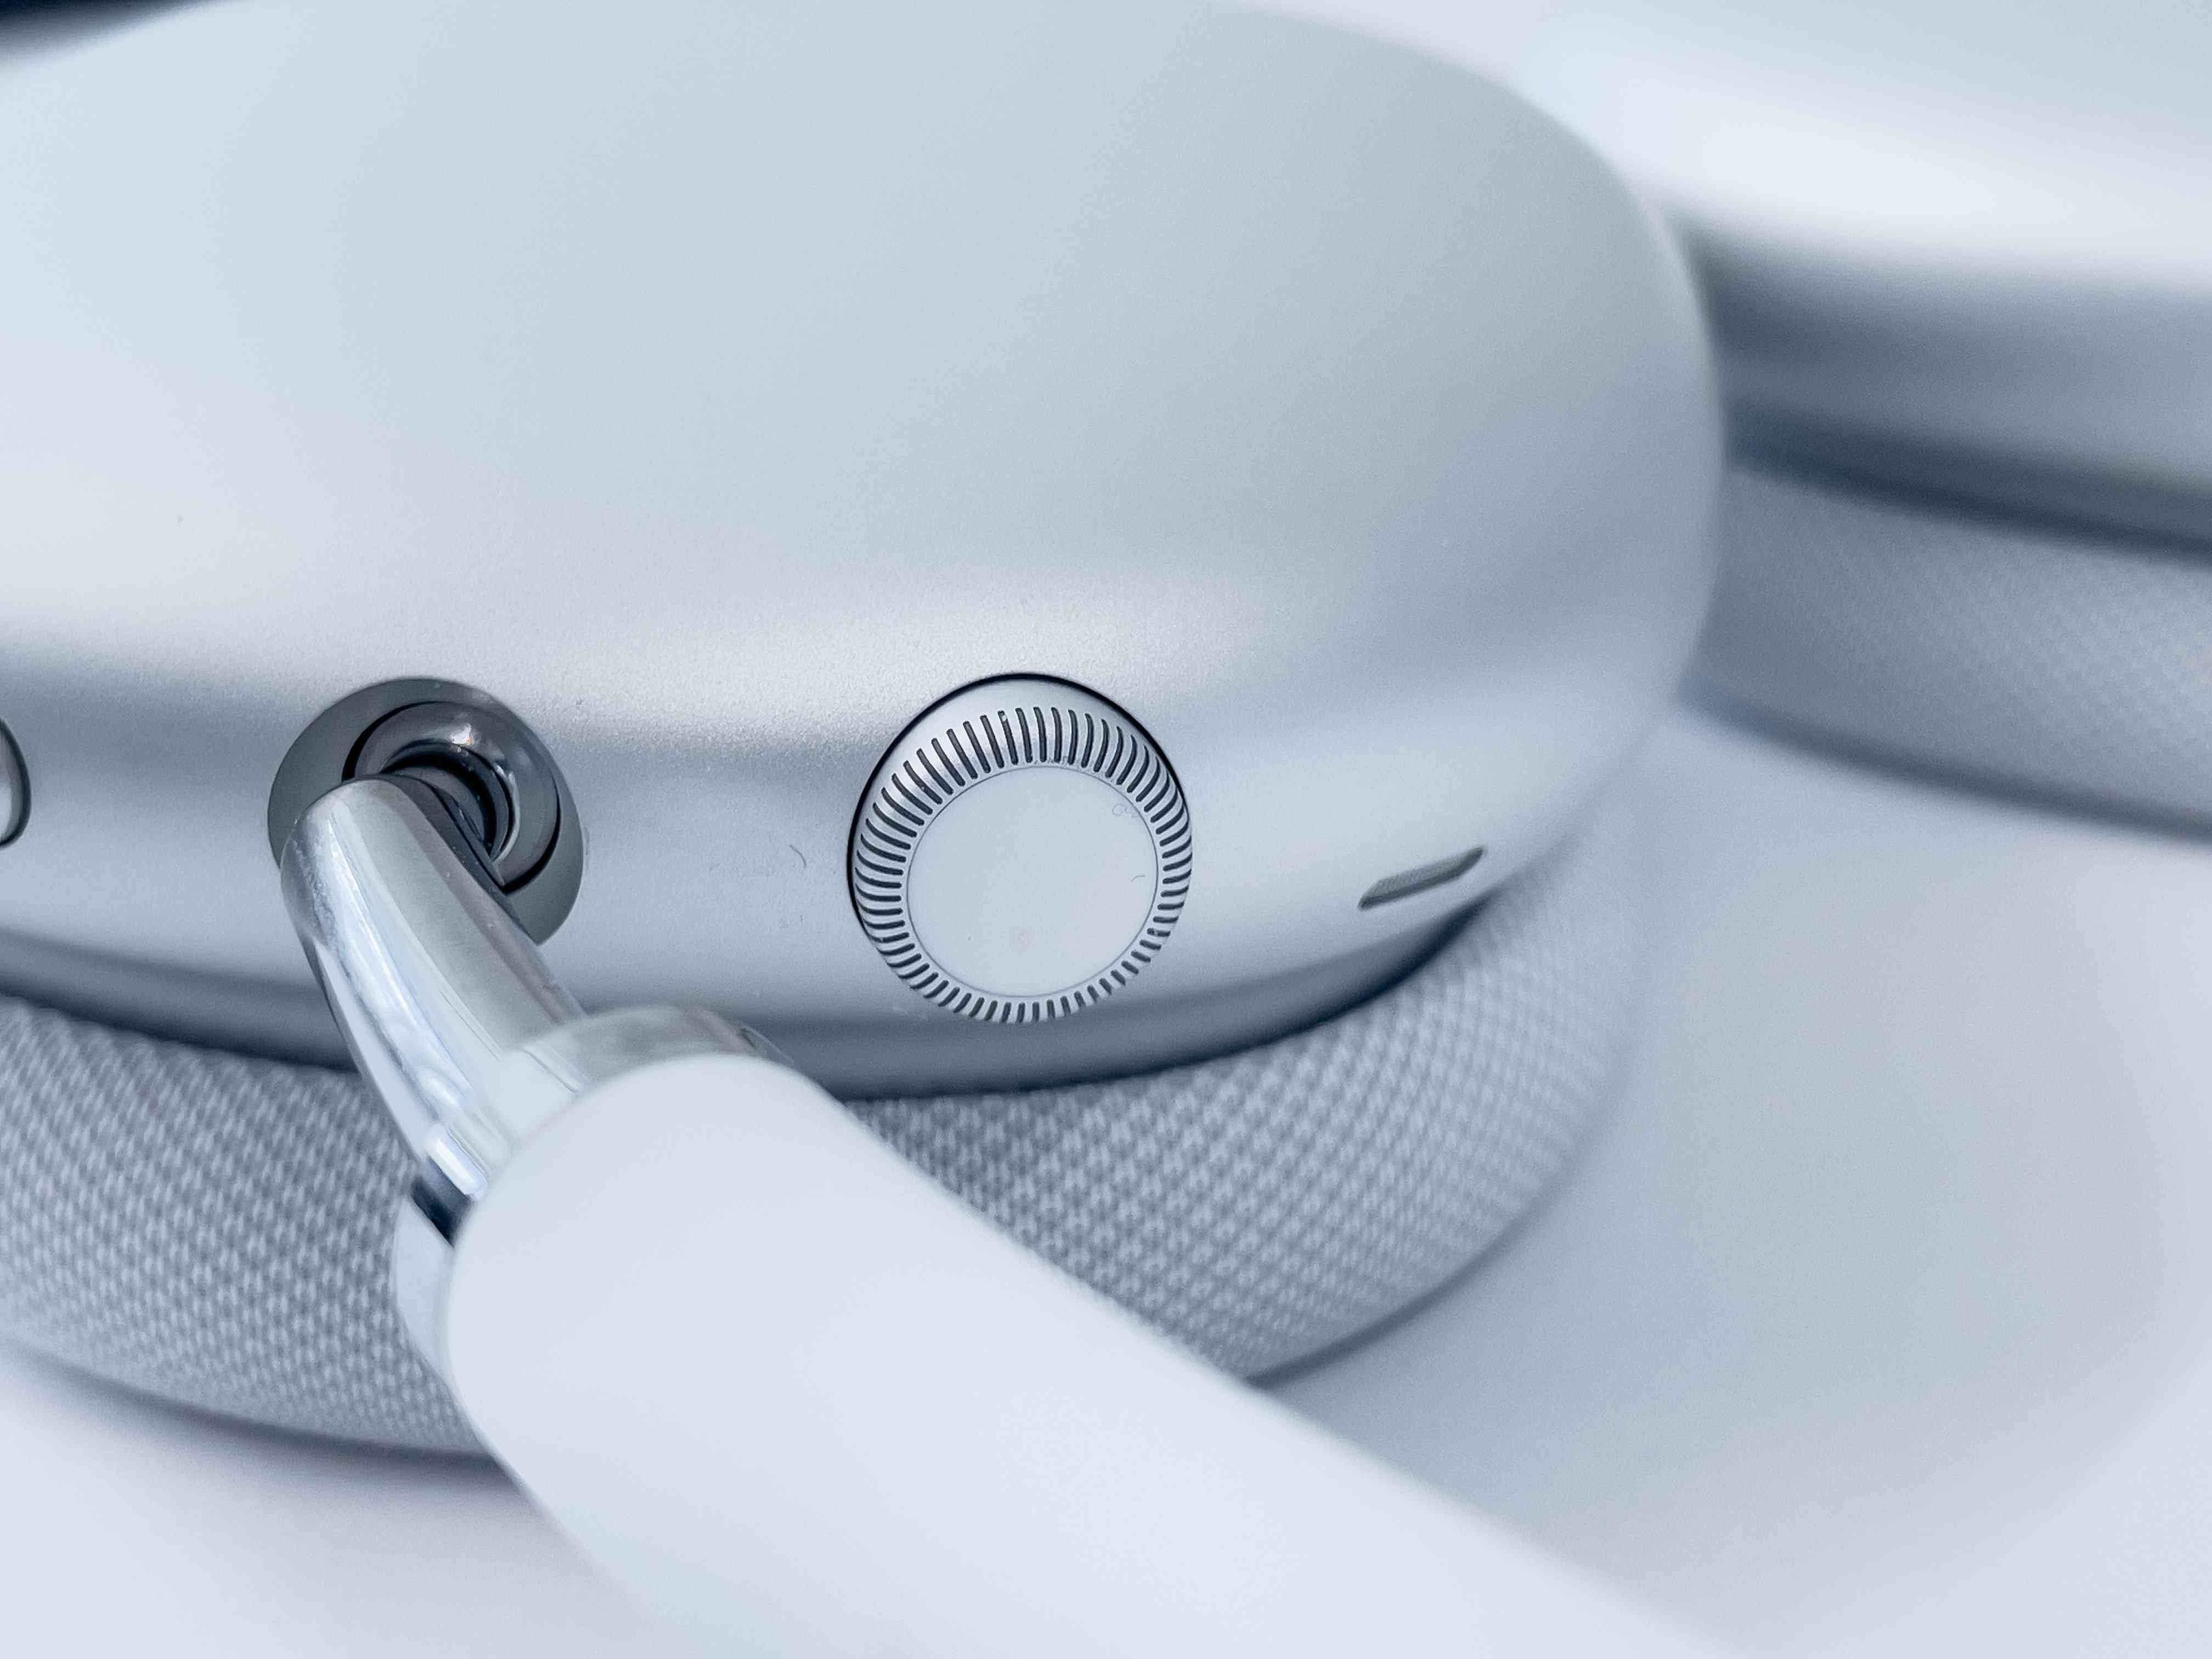 Closeup of the volume control on AirPods Max.